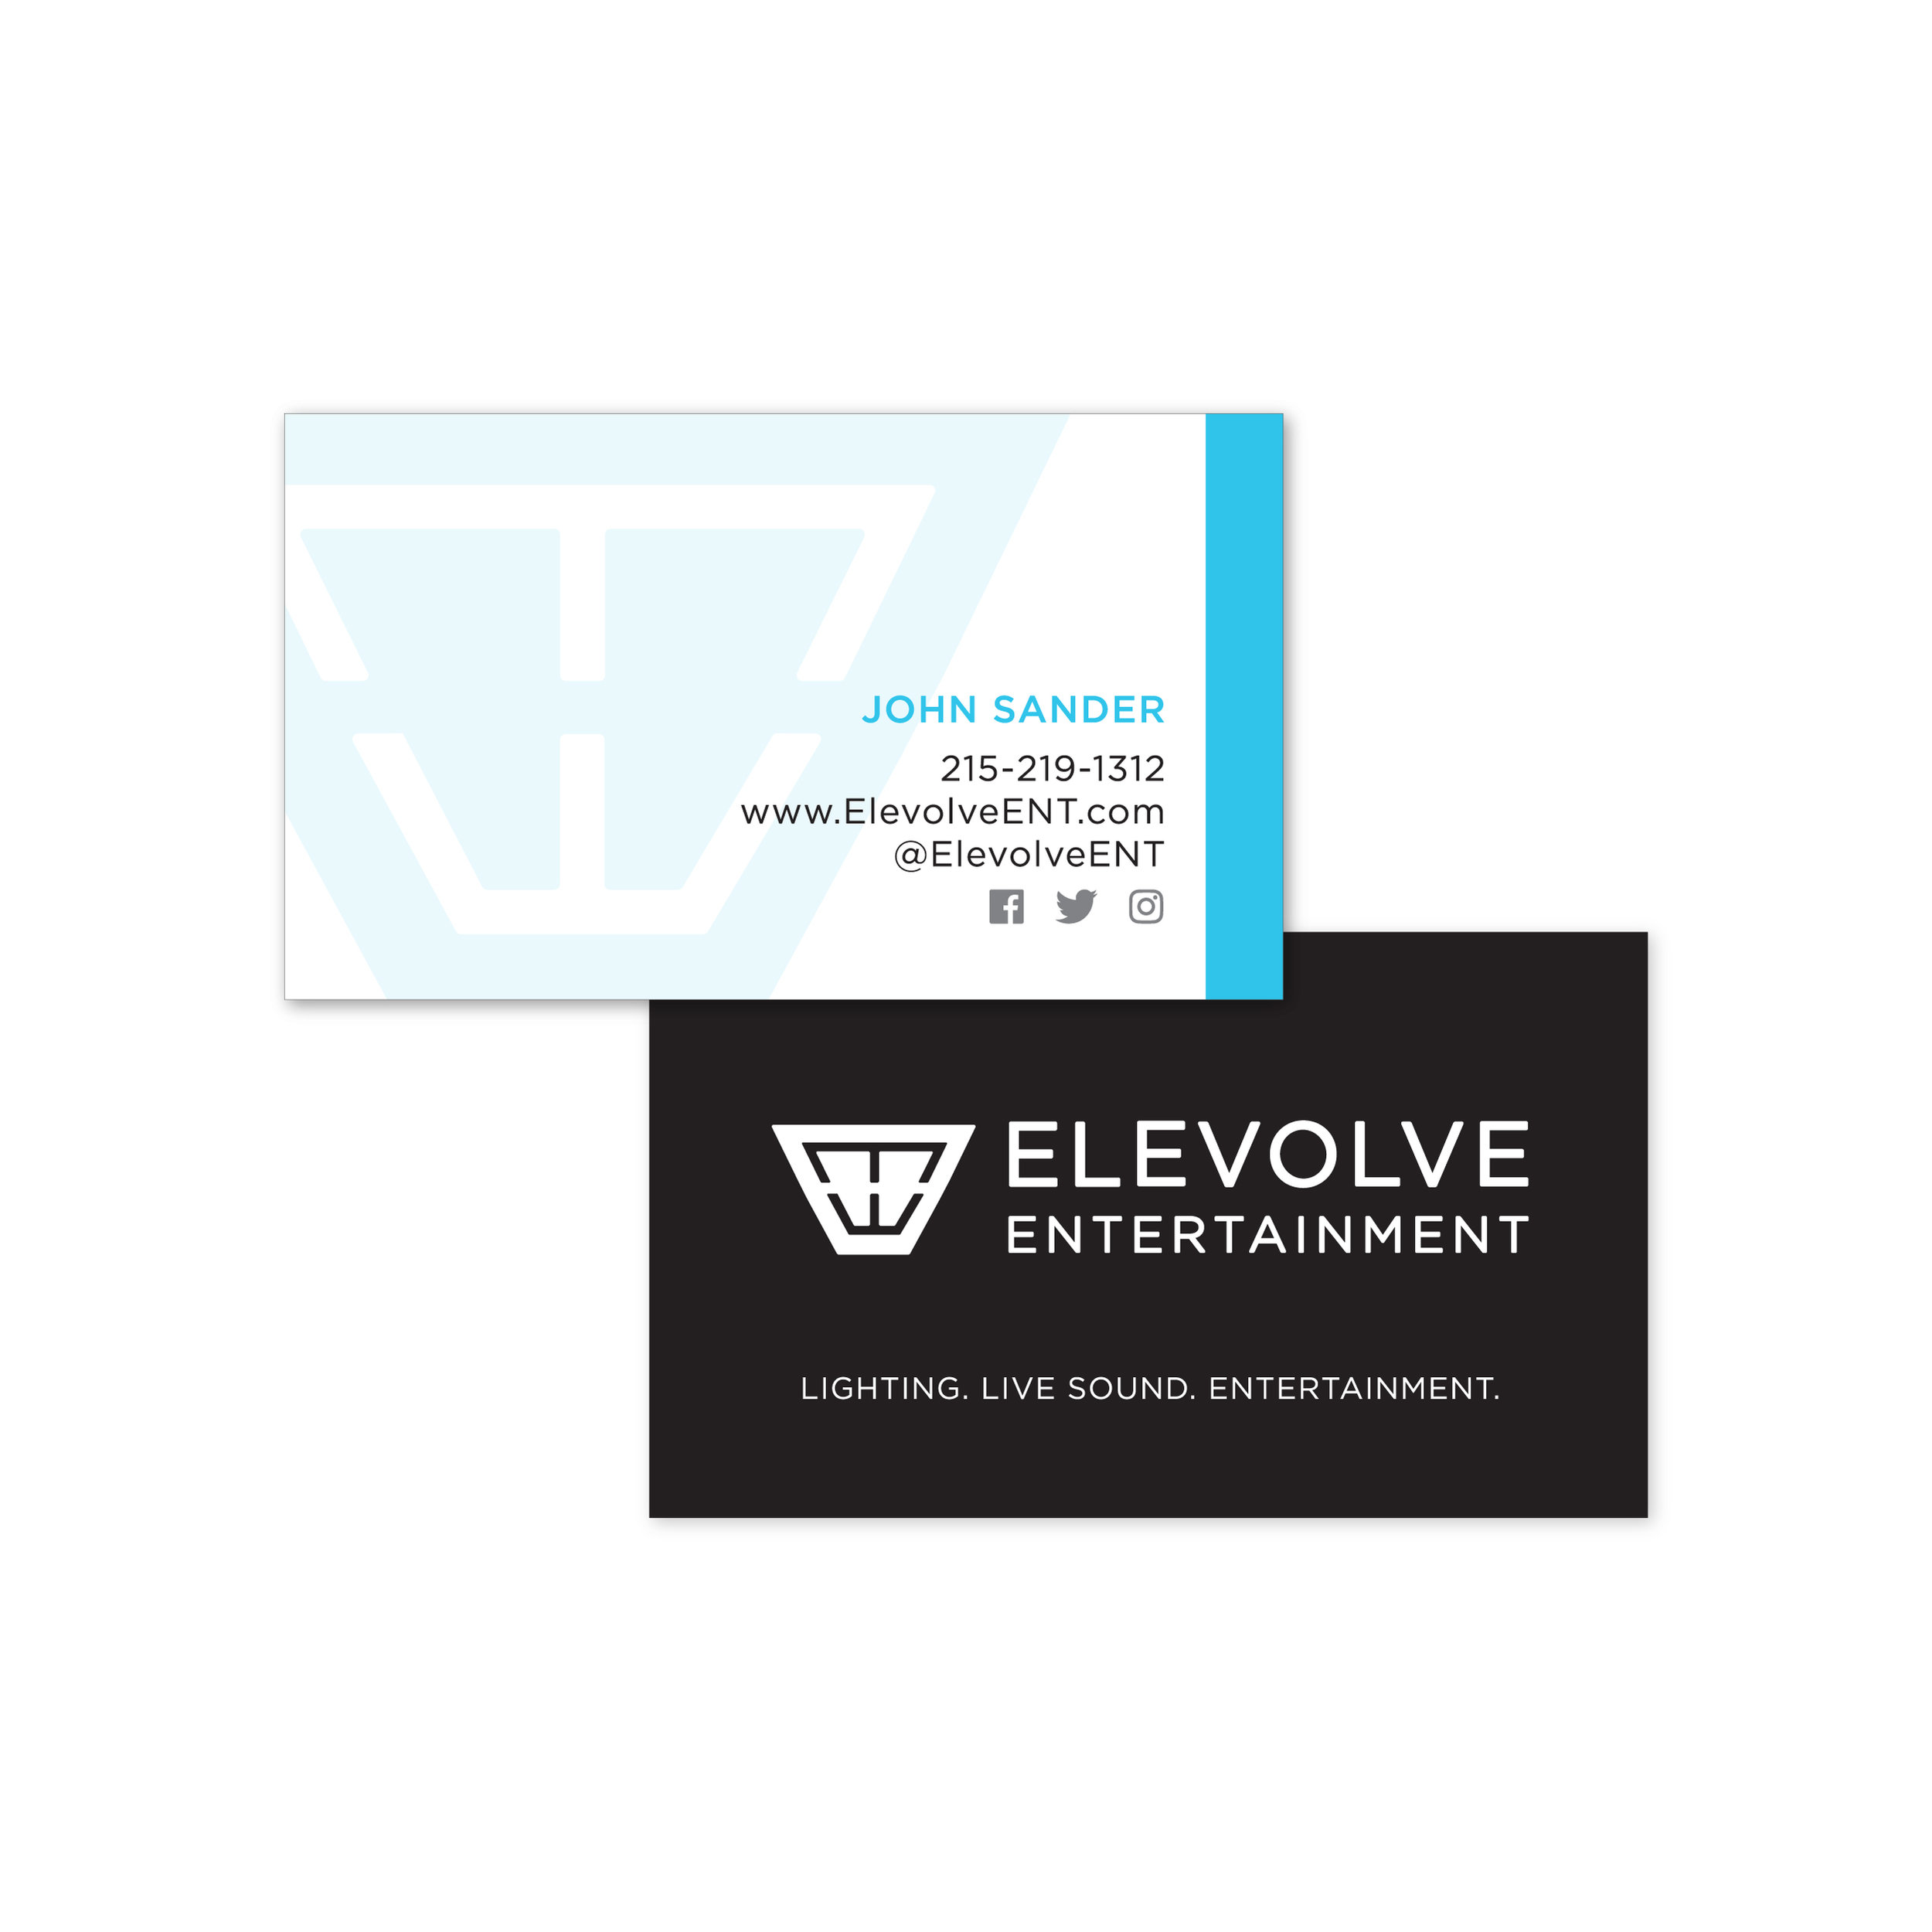 Client: Elevolve